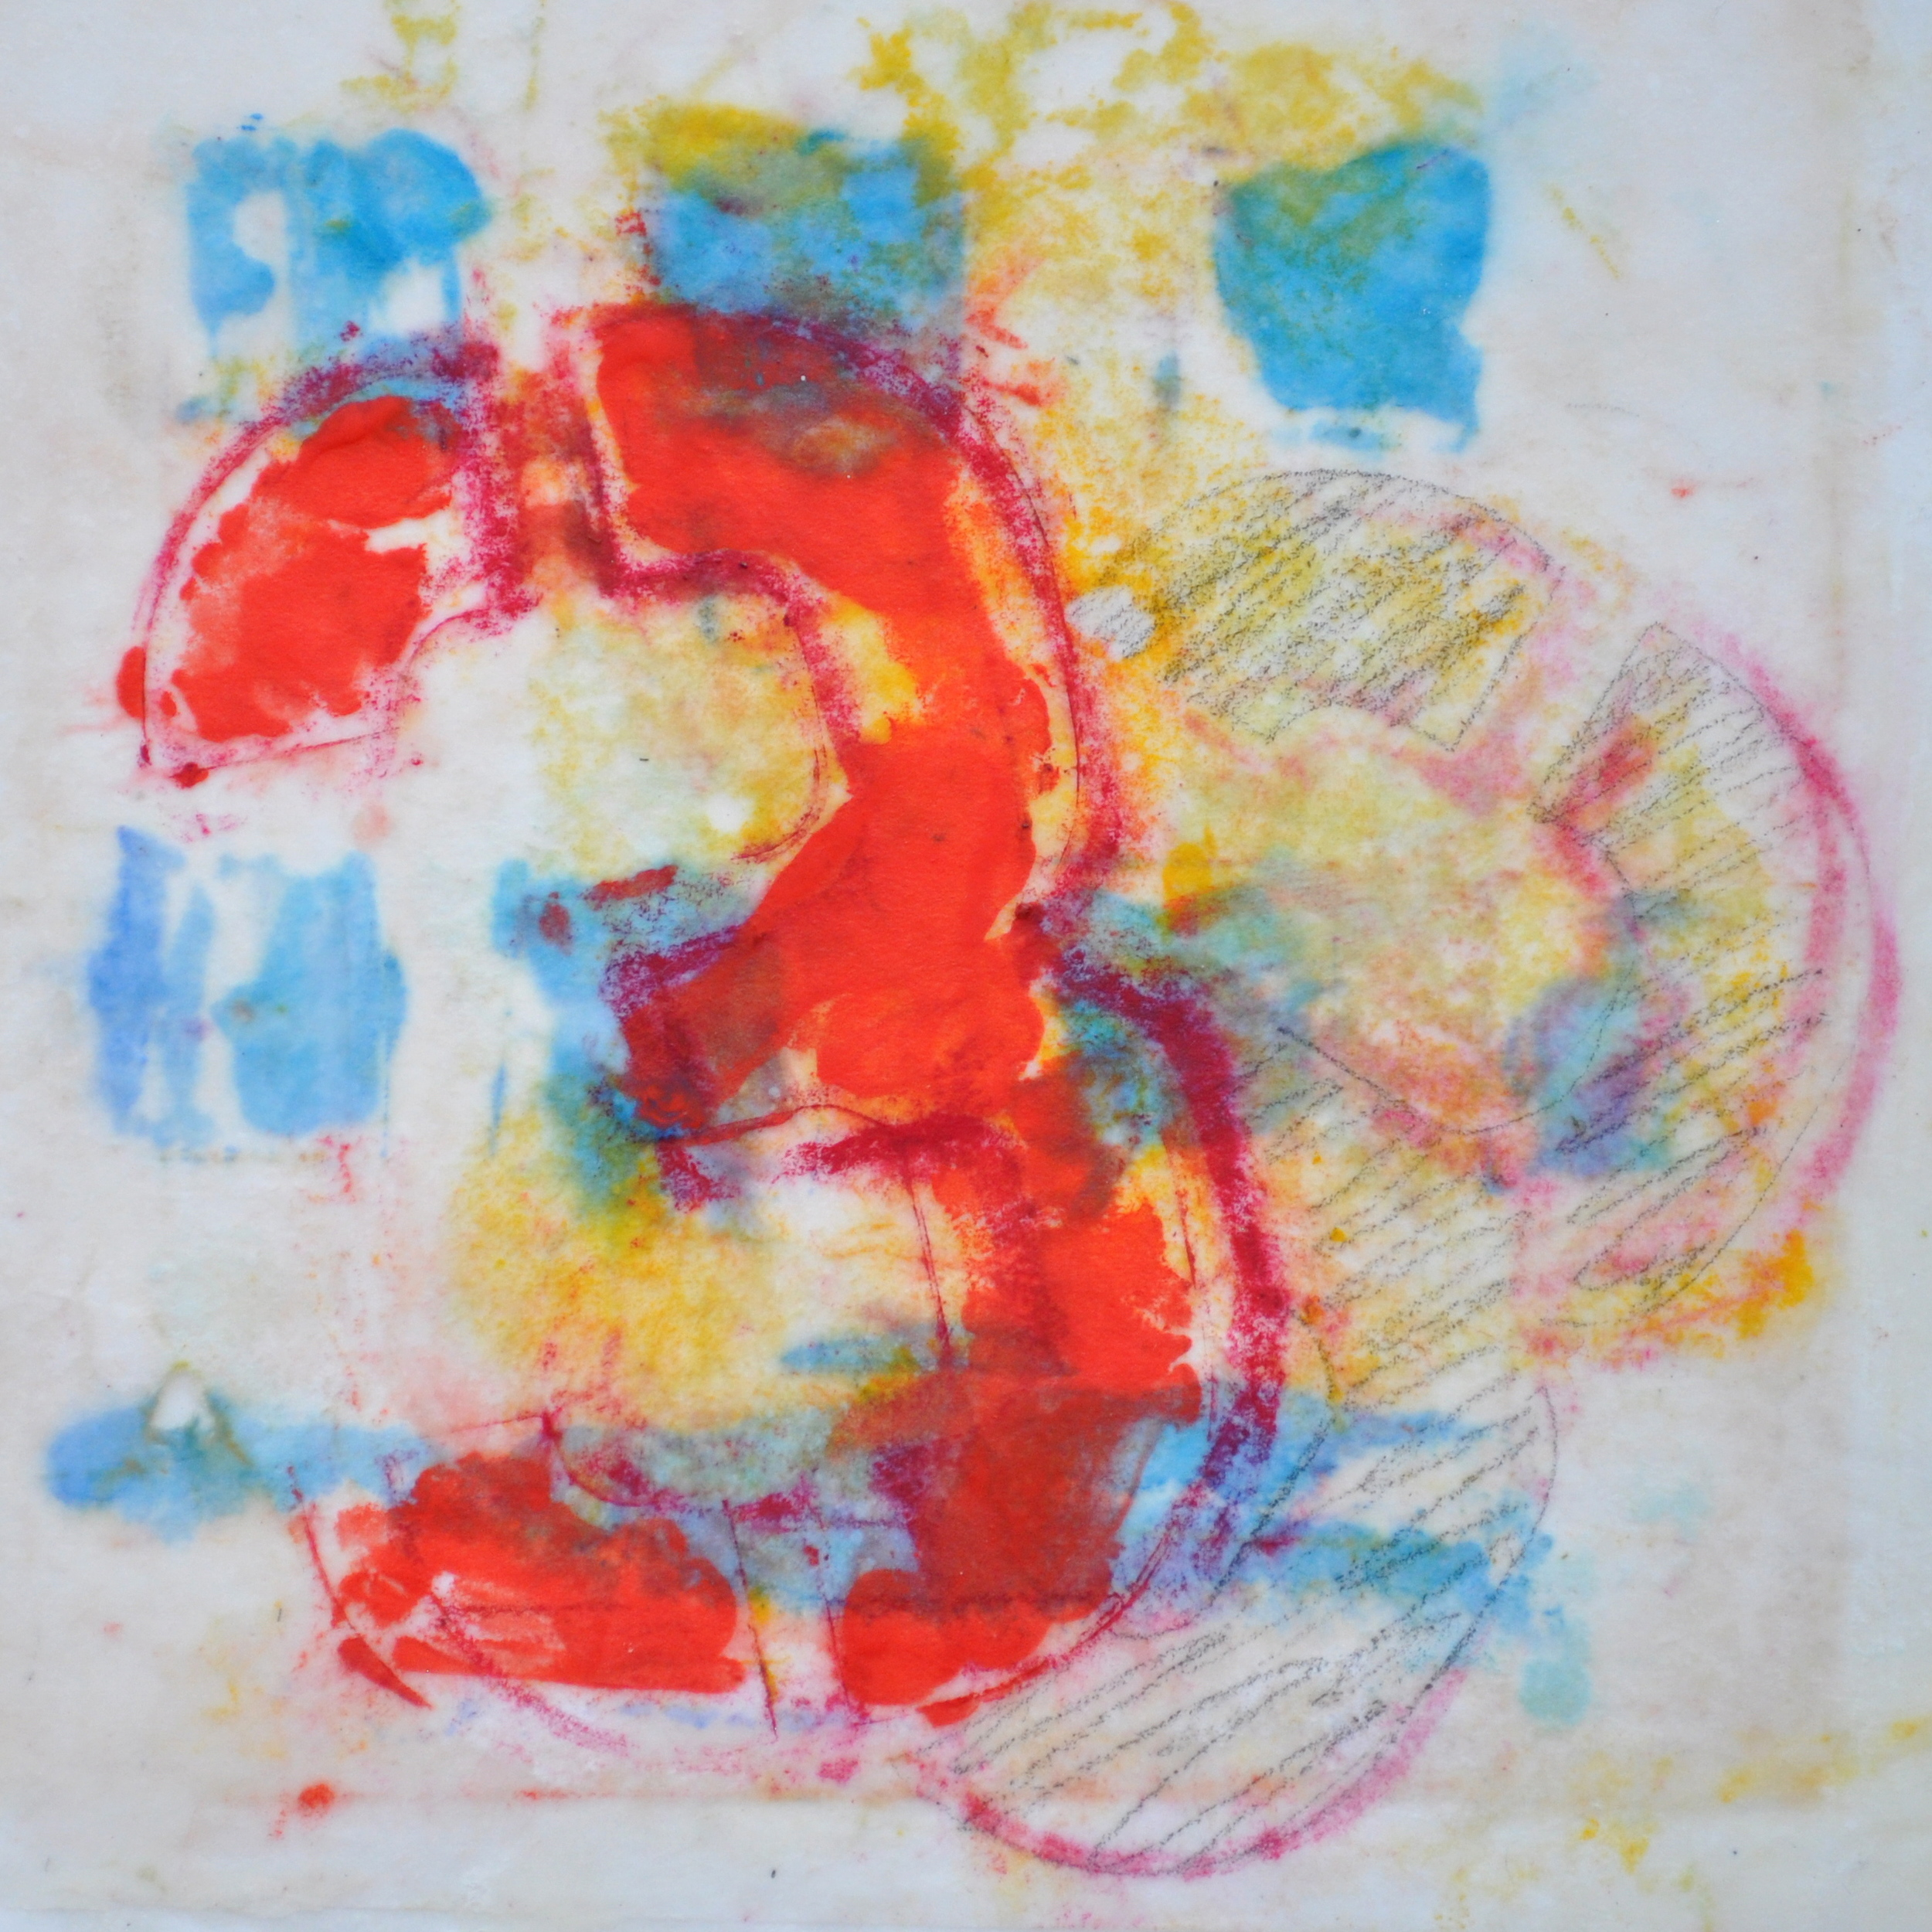 Threeplay encaustic, monotype & mixed media on paper, 8x8""